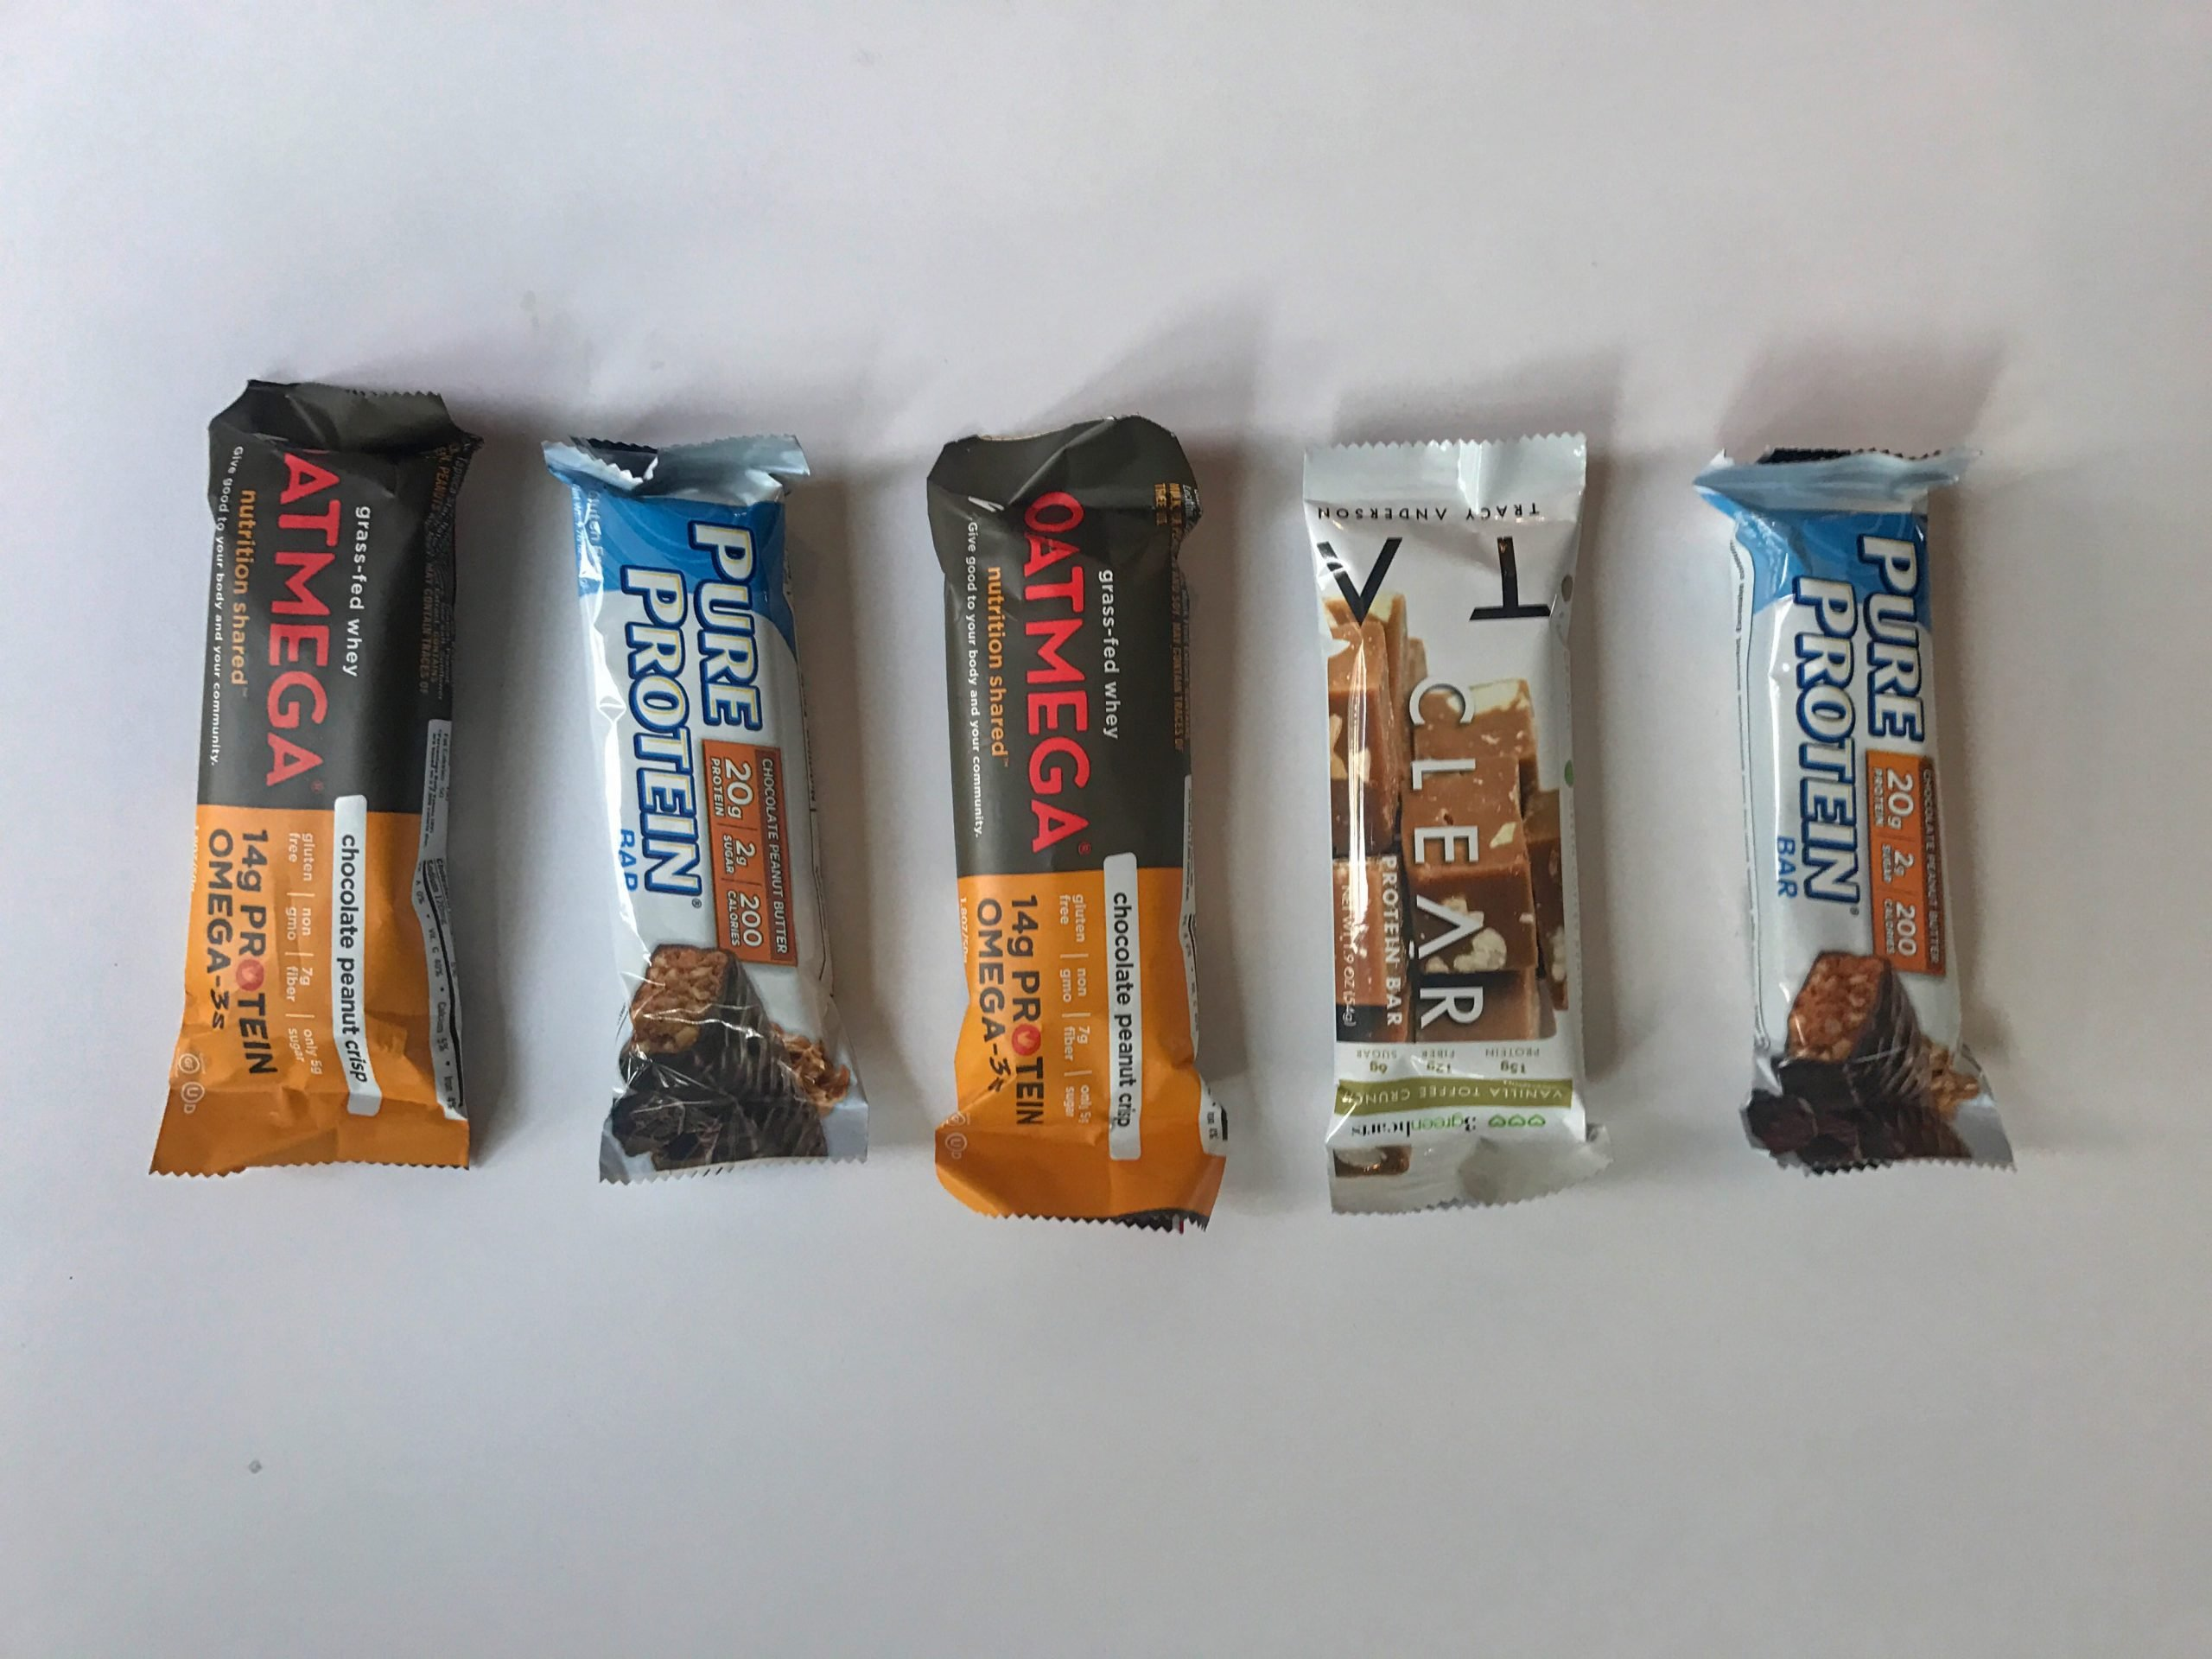 Picking out the Best Protein Bar